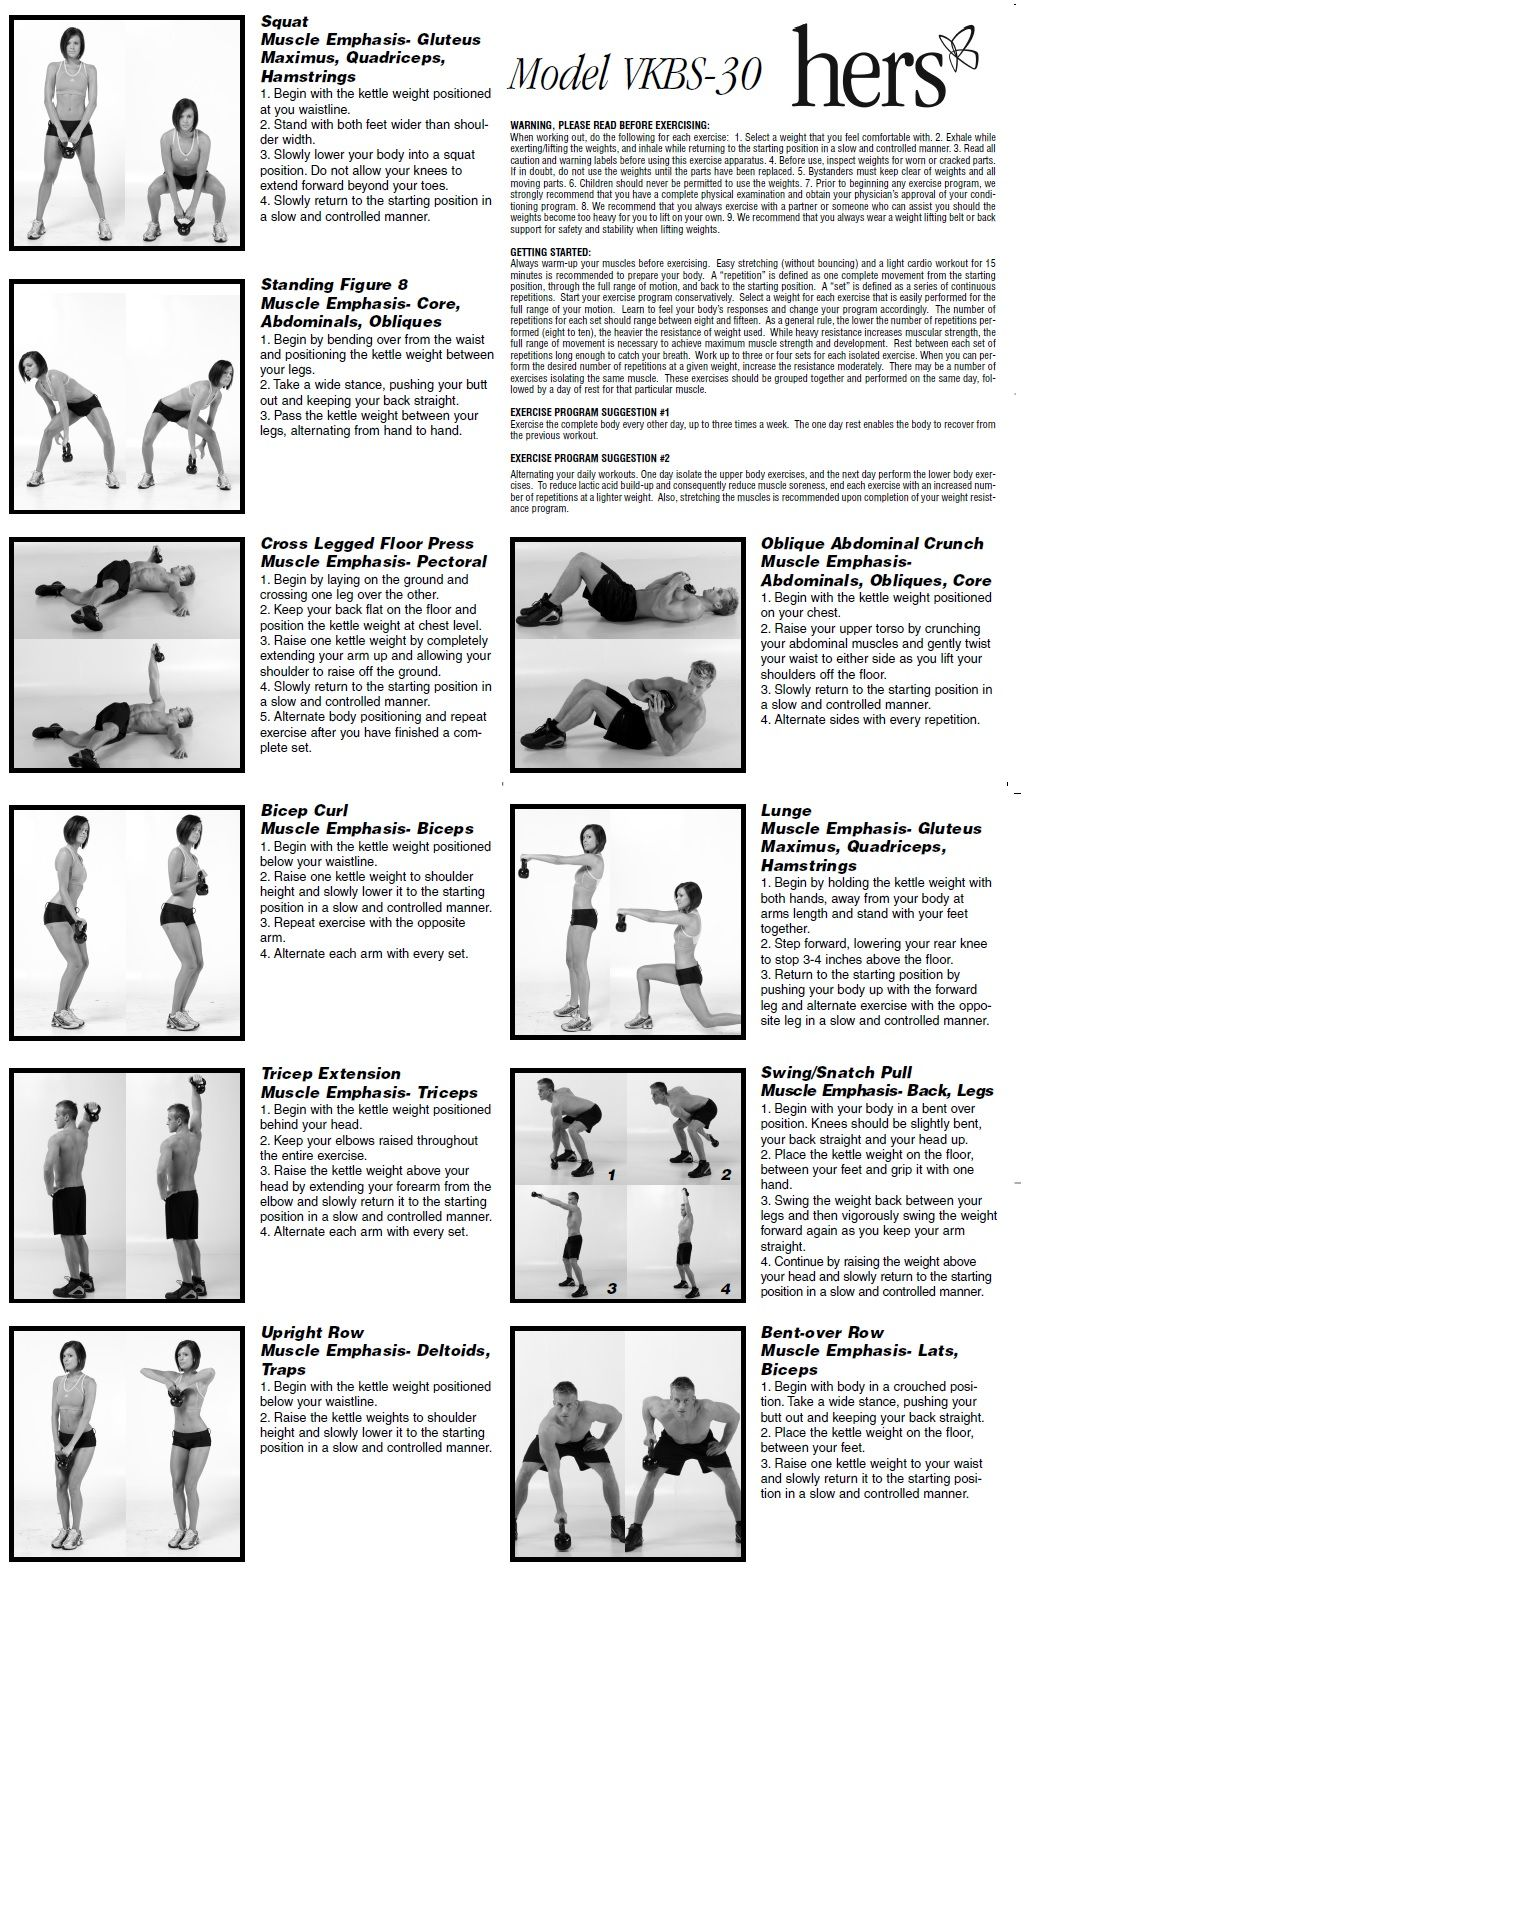 Pin On Fitness Workout Inspiration